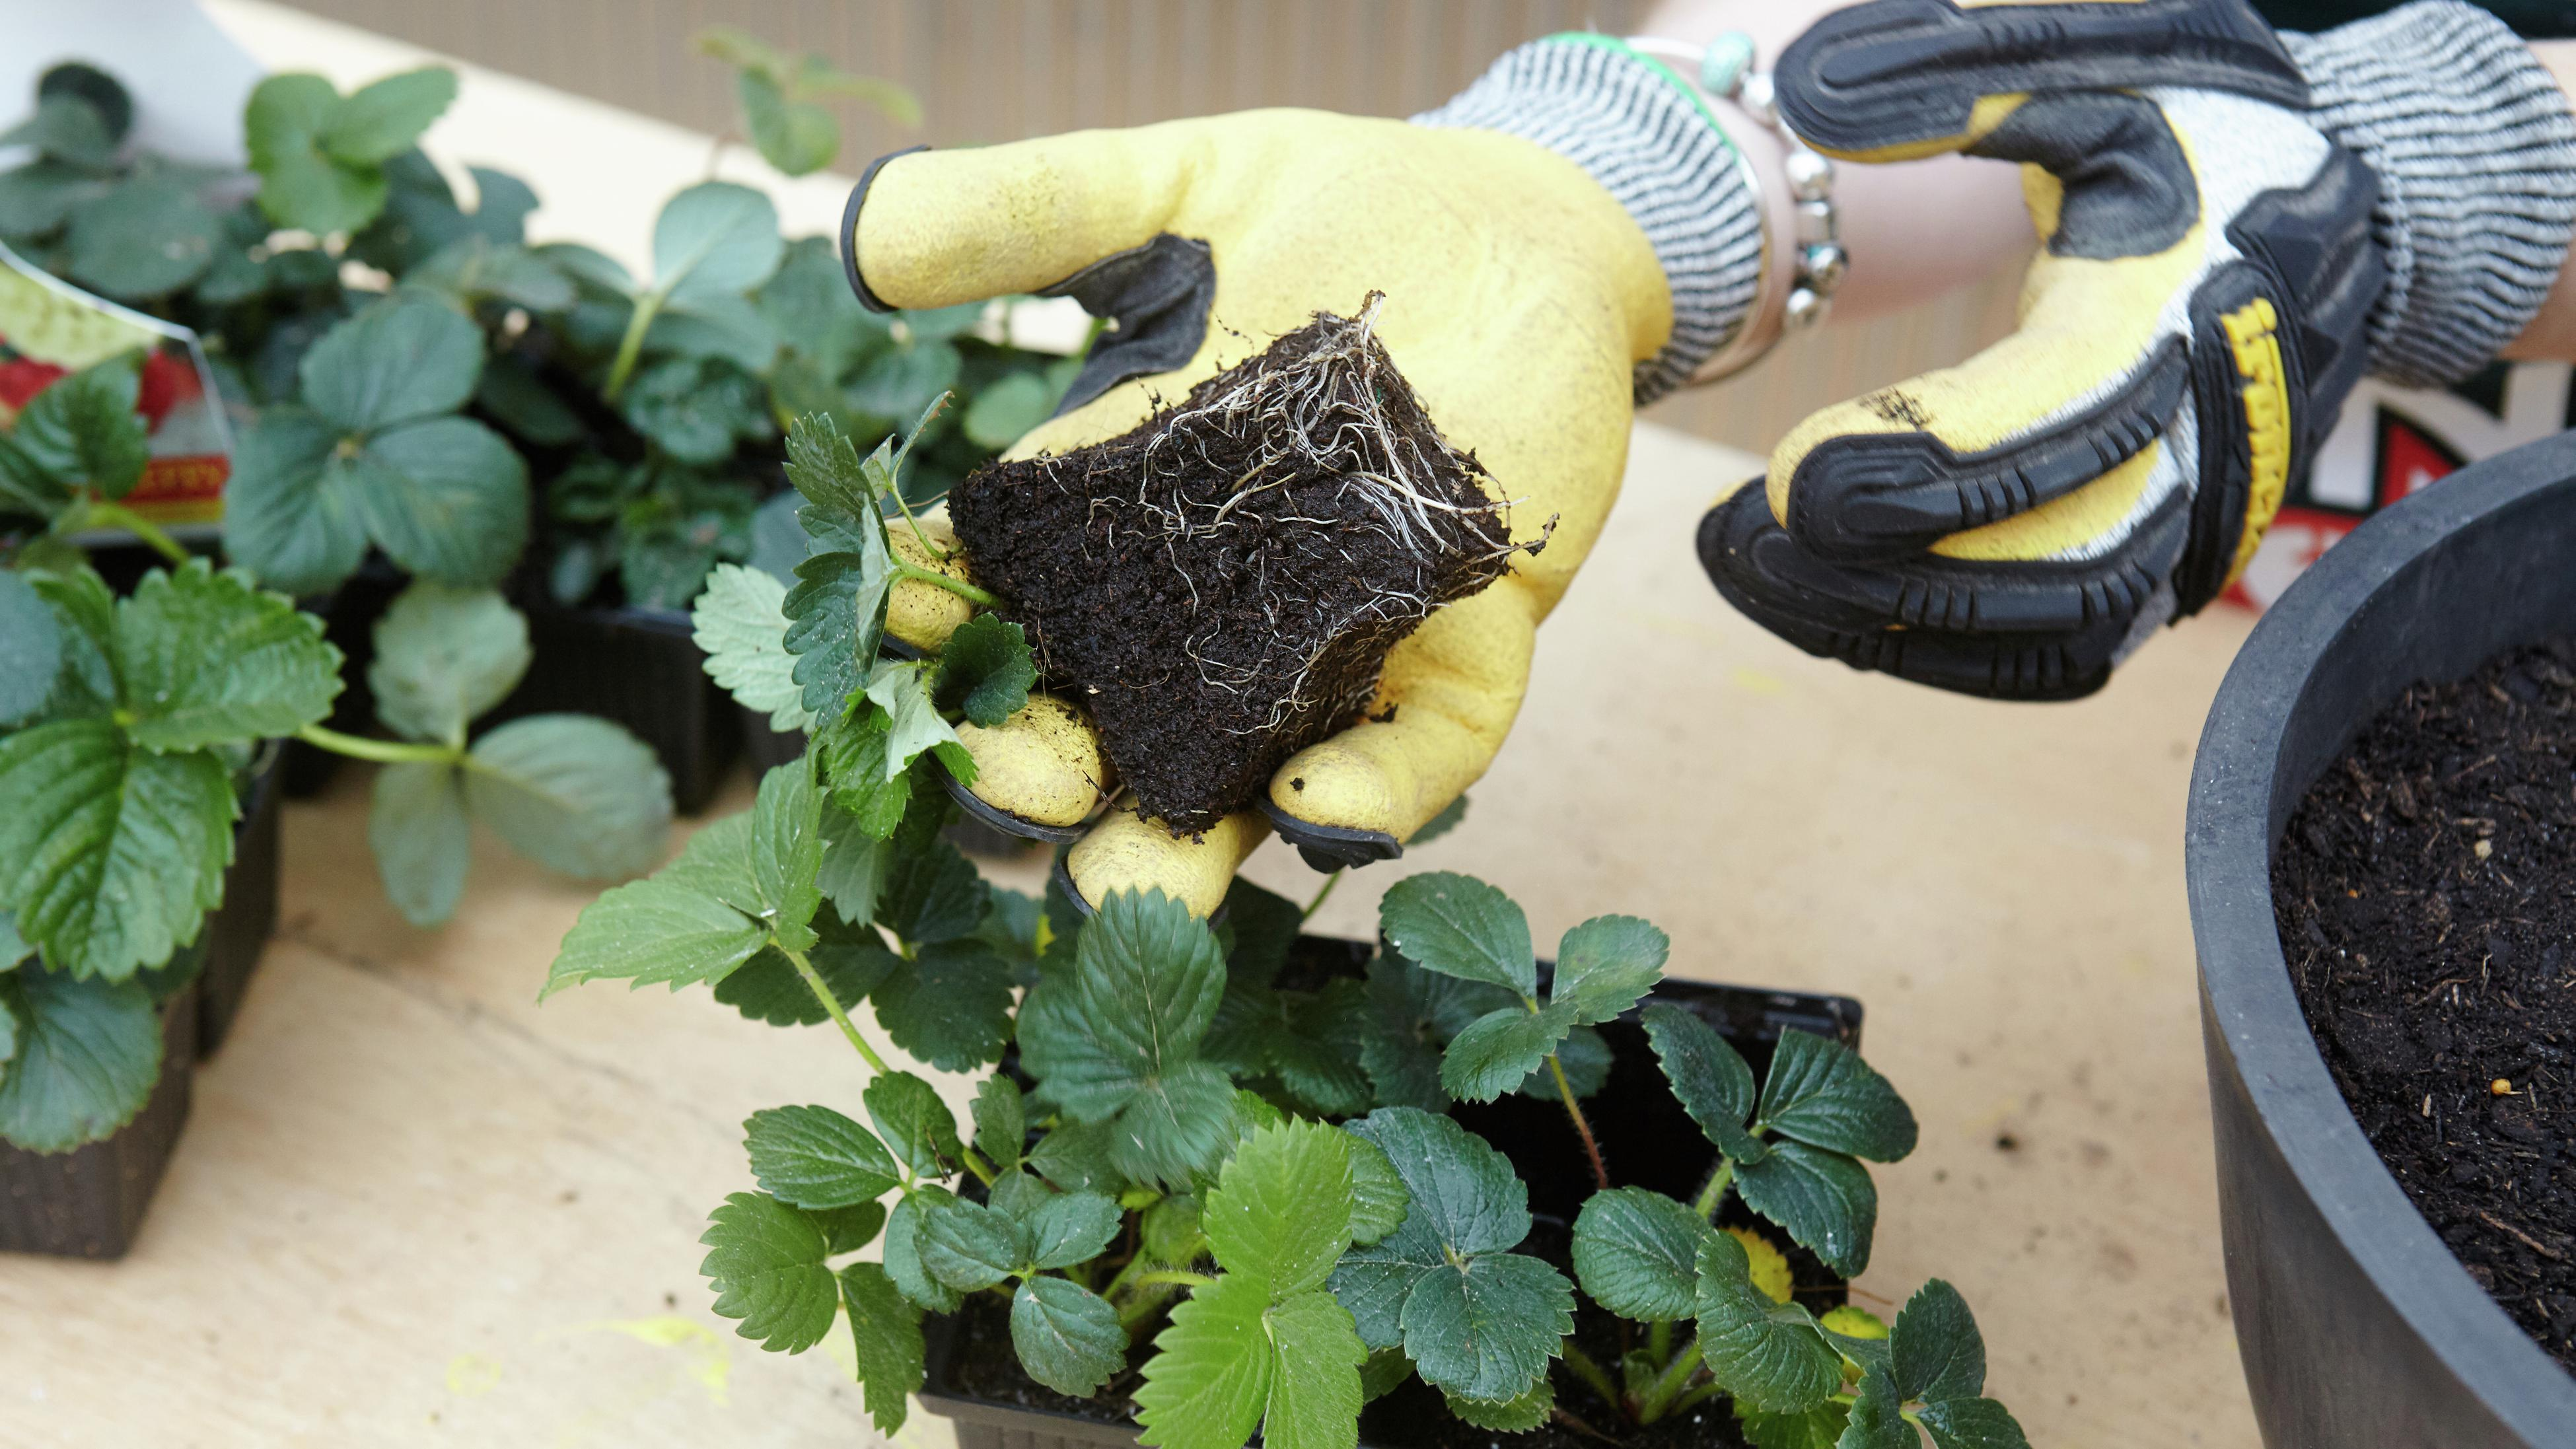 A person planting strawberry seedlings in a pot.